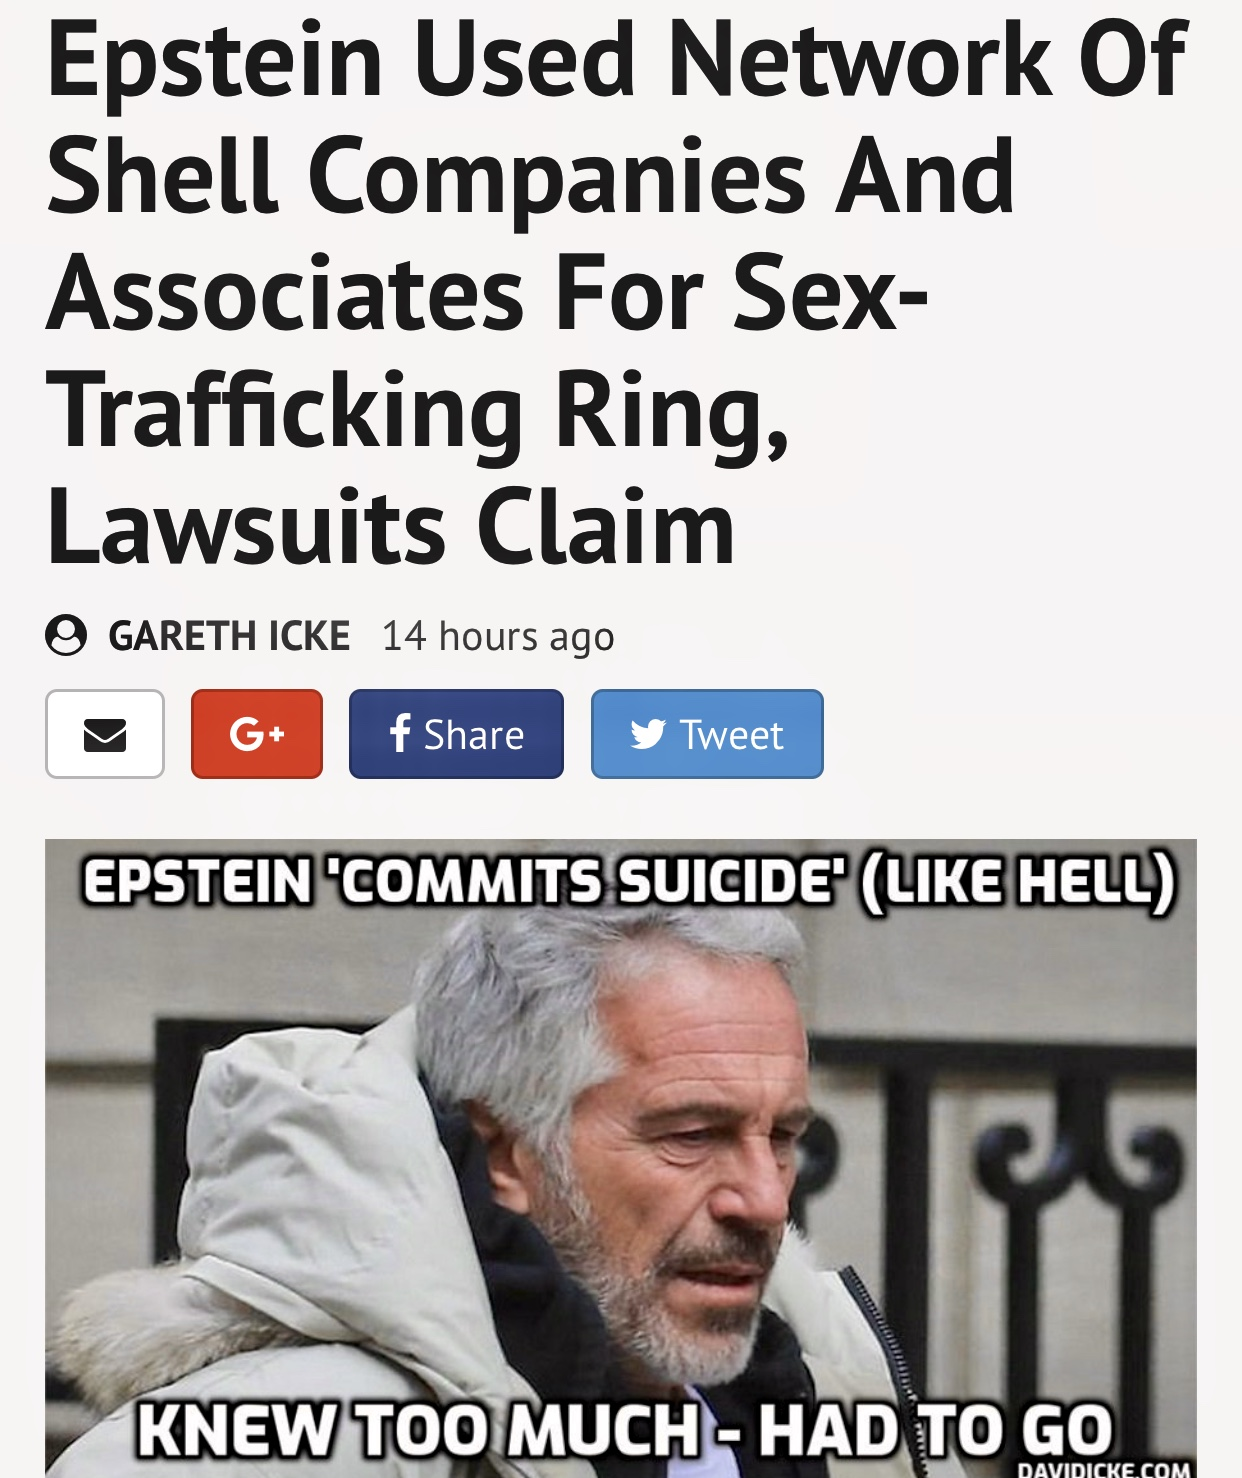 David Icke   Epstein Used Network Of Shell Companies And Associates For Sex-Trafficking Ring, Lawsuits Claim